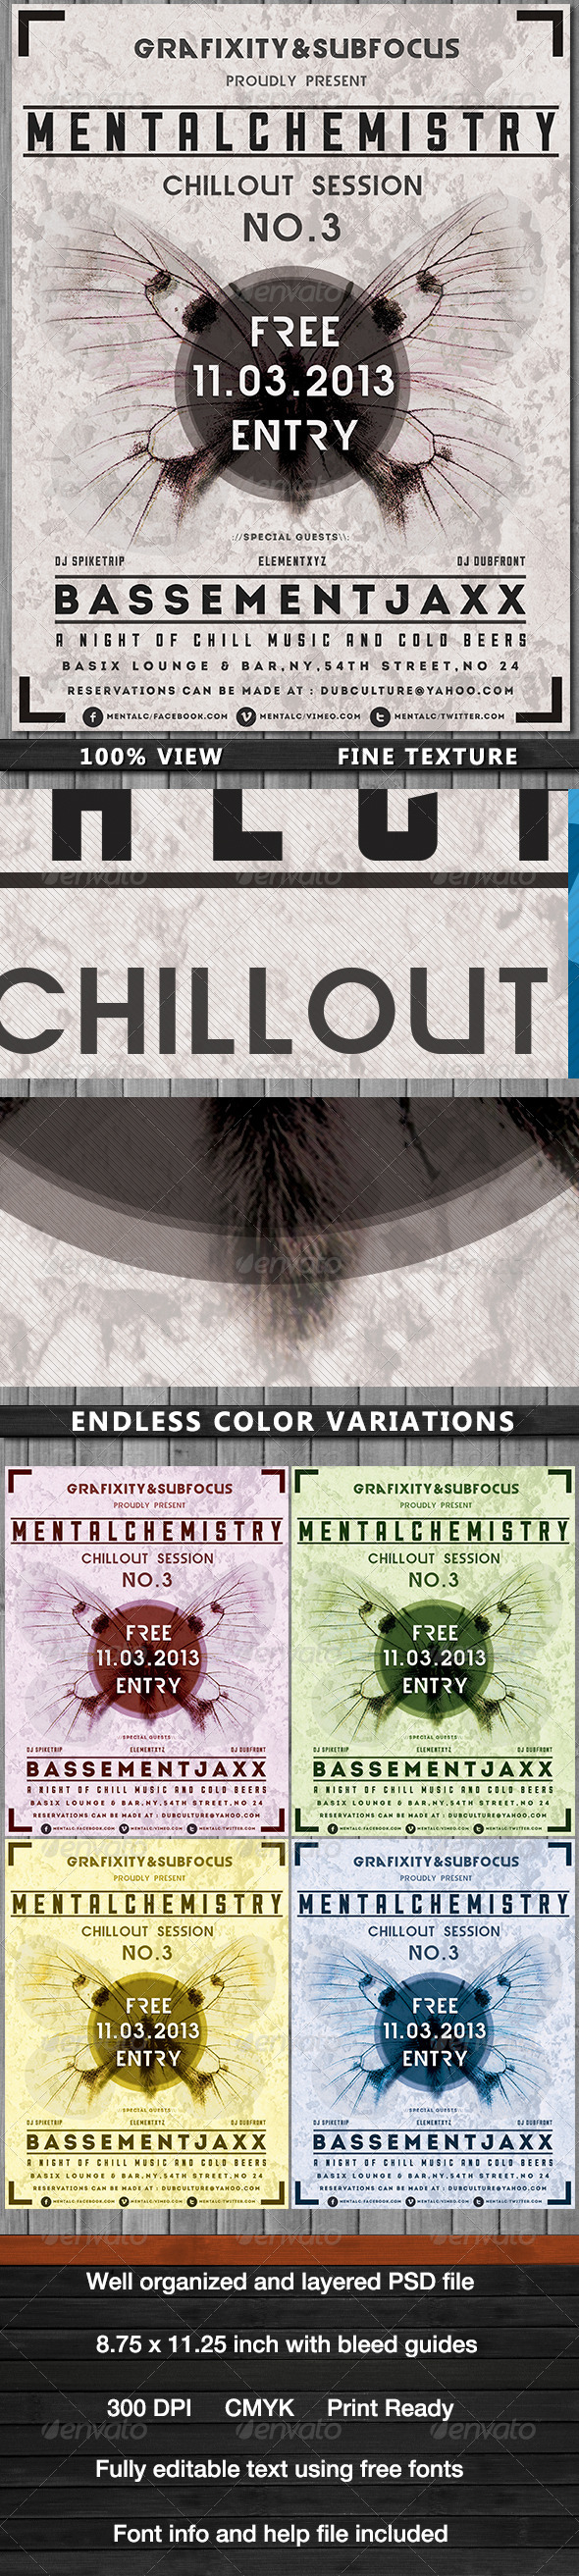 MentalChemistry-Chillout/Dub Poster - Flyers Print Templates